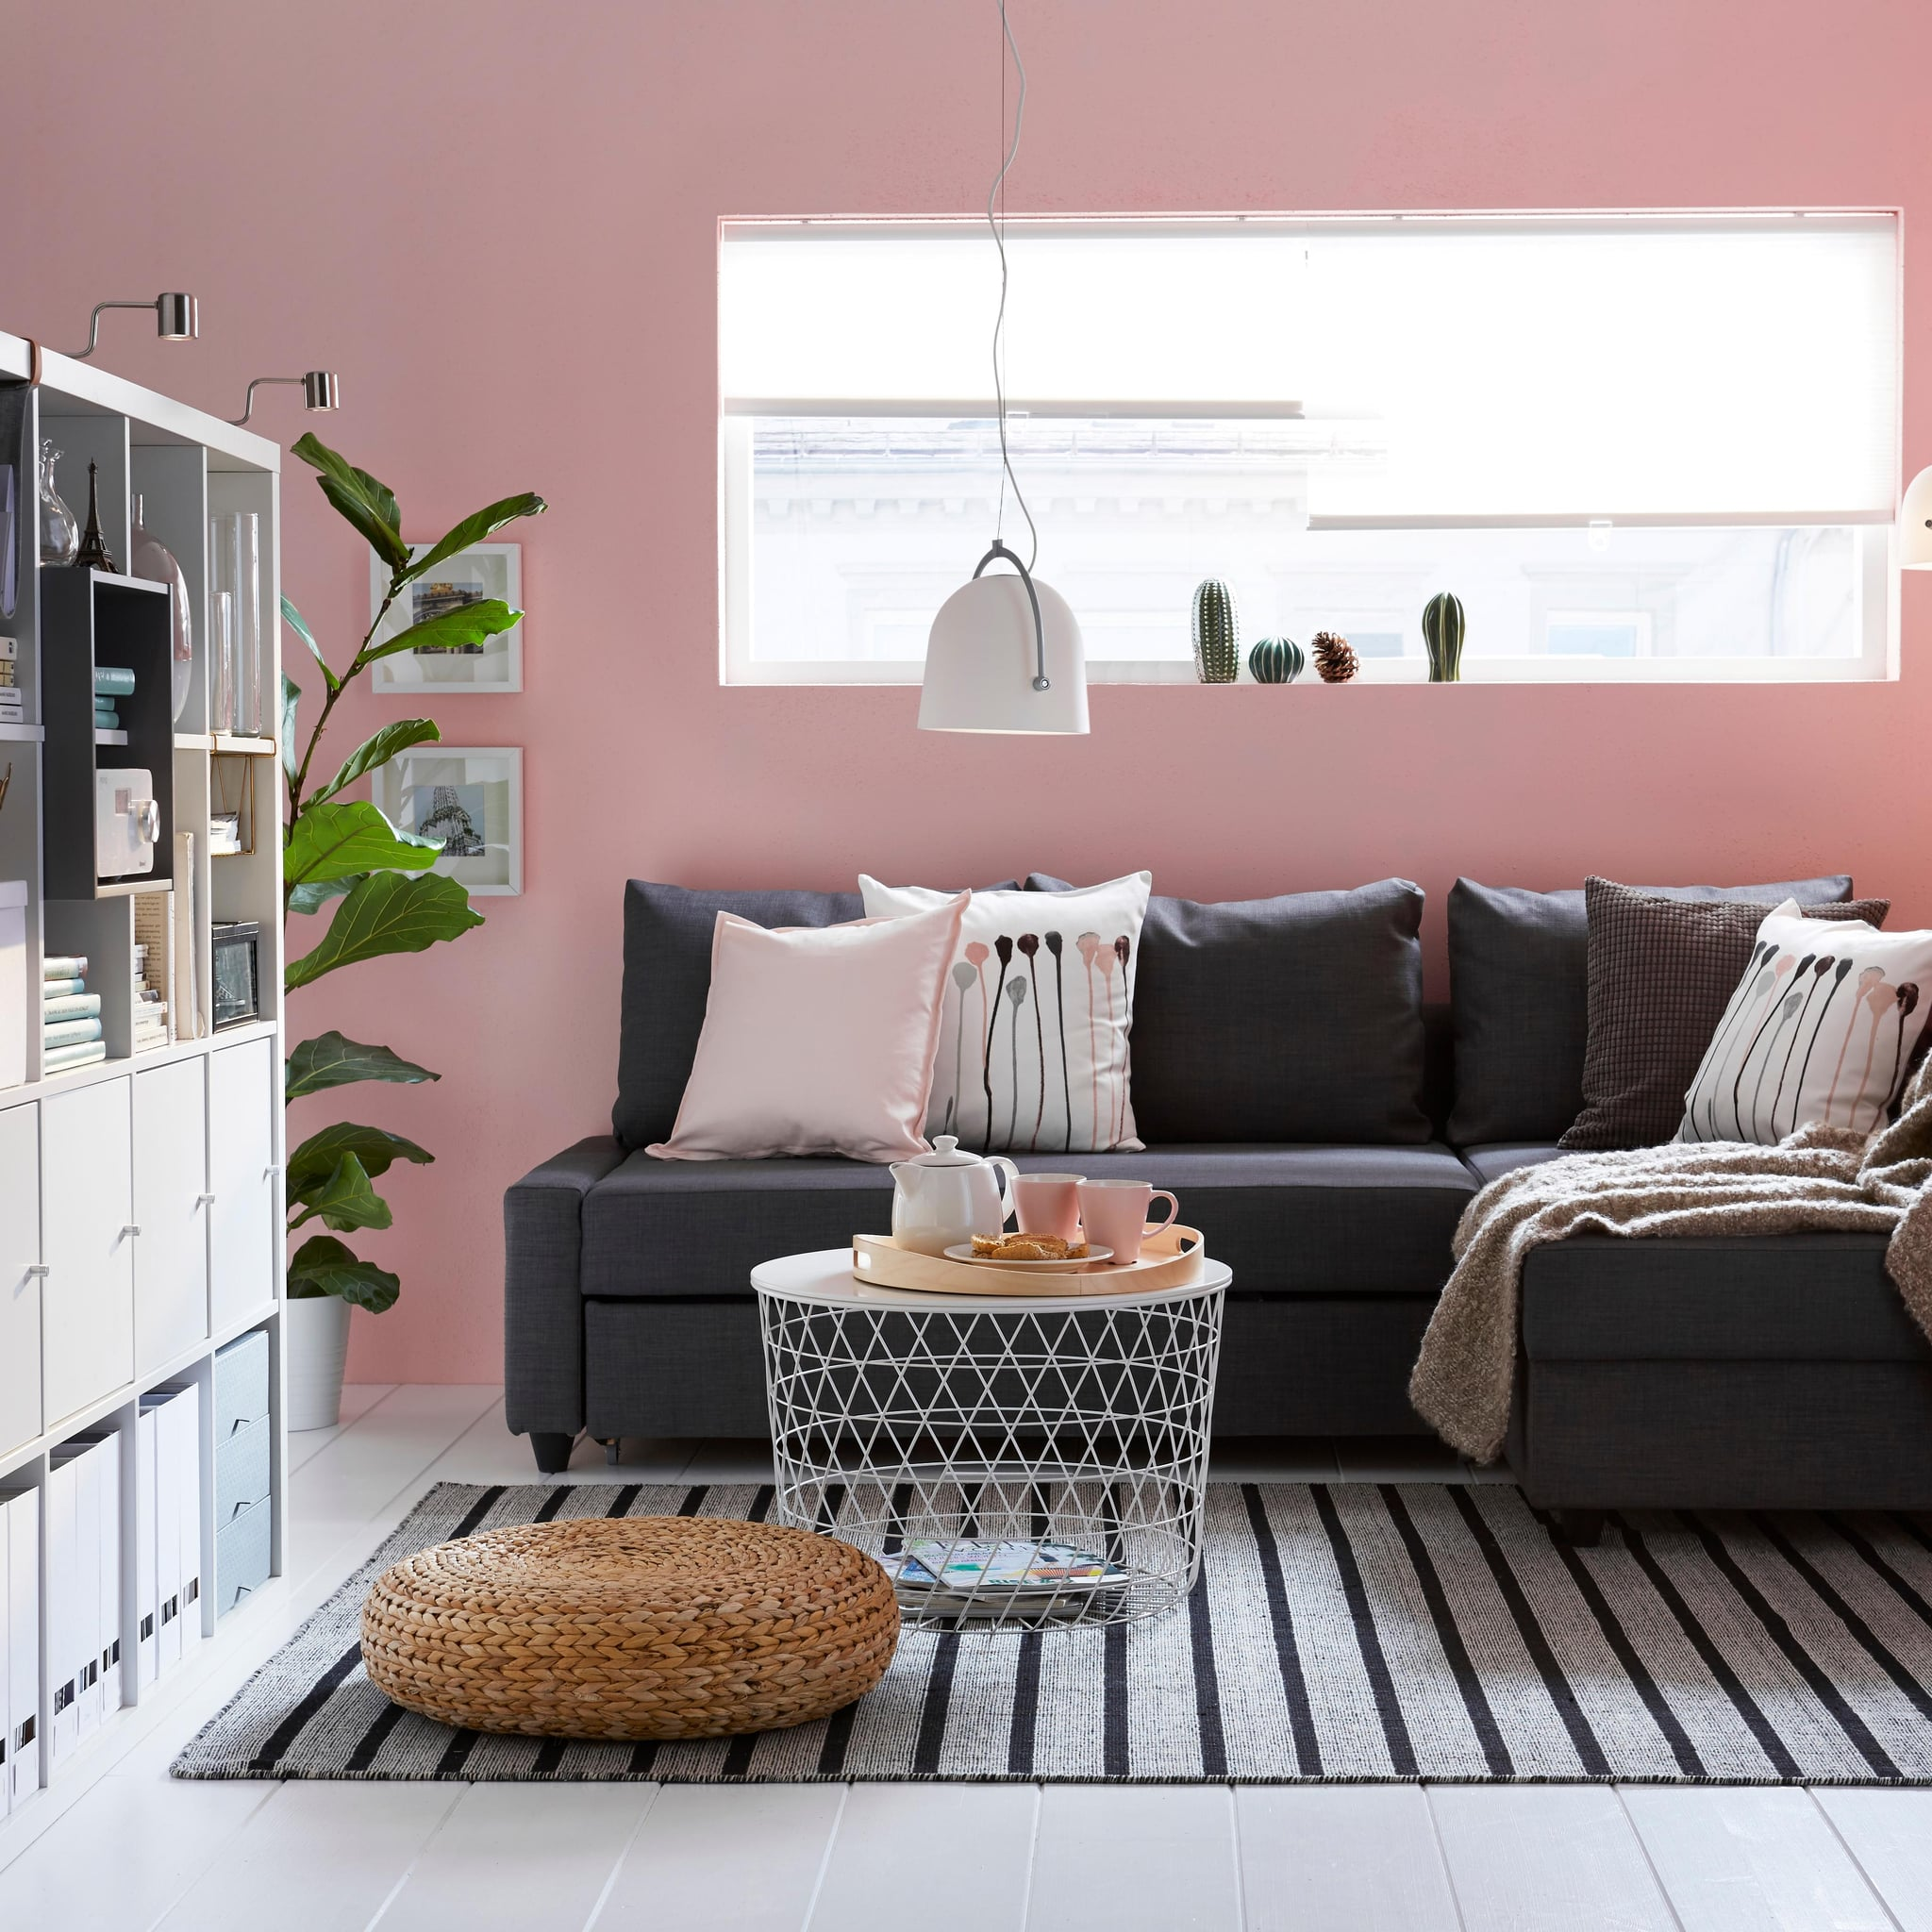 Best Ikea Products From the 2018 Catalogue | POPSUGAR Home Australia